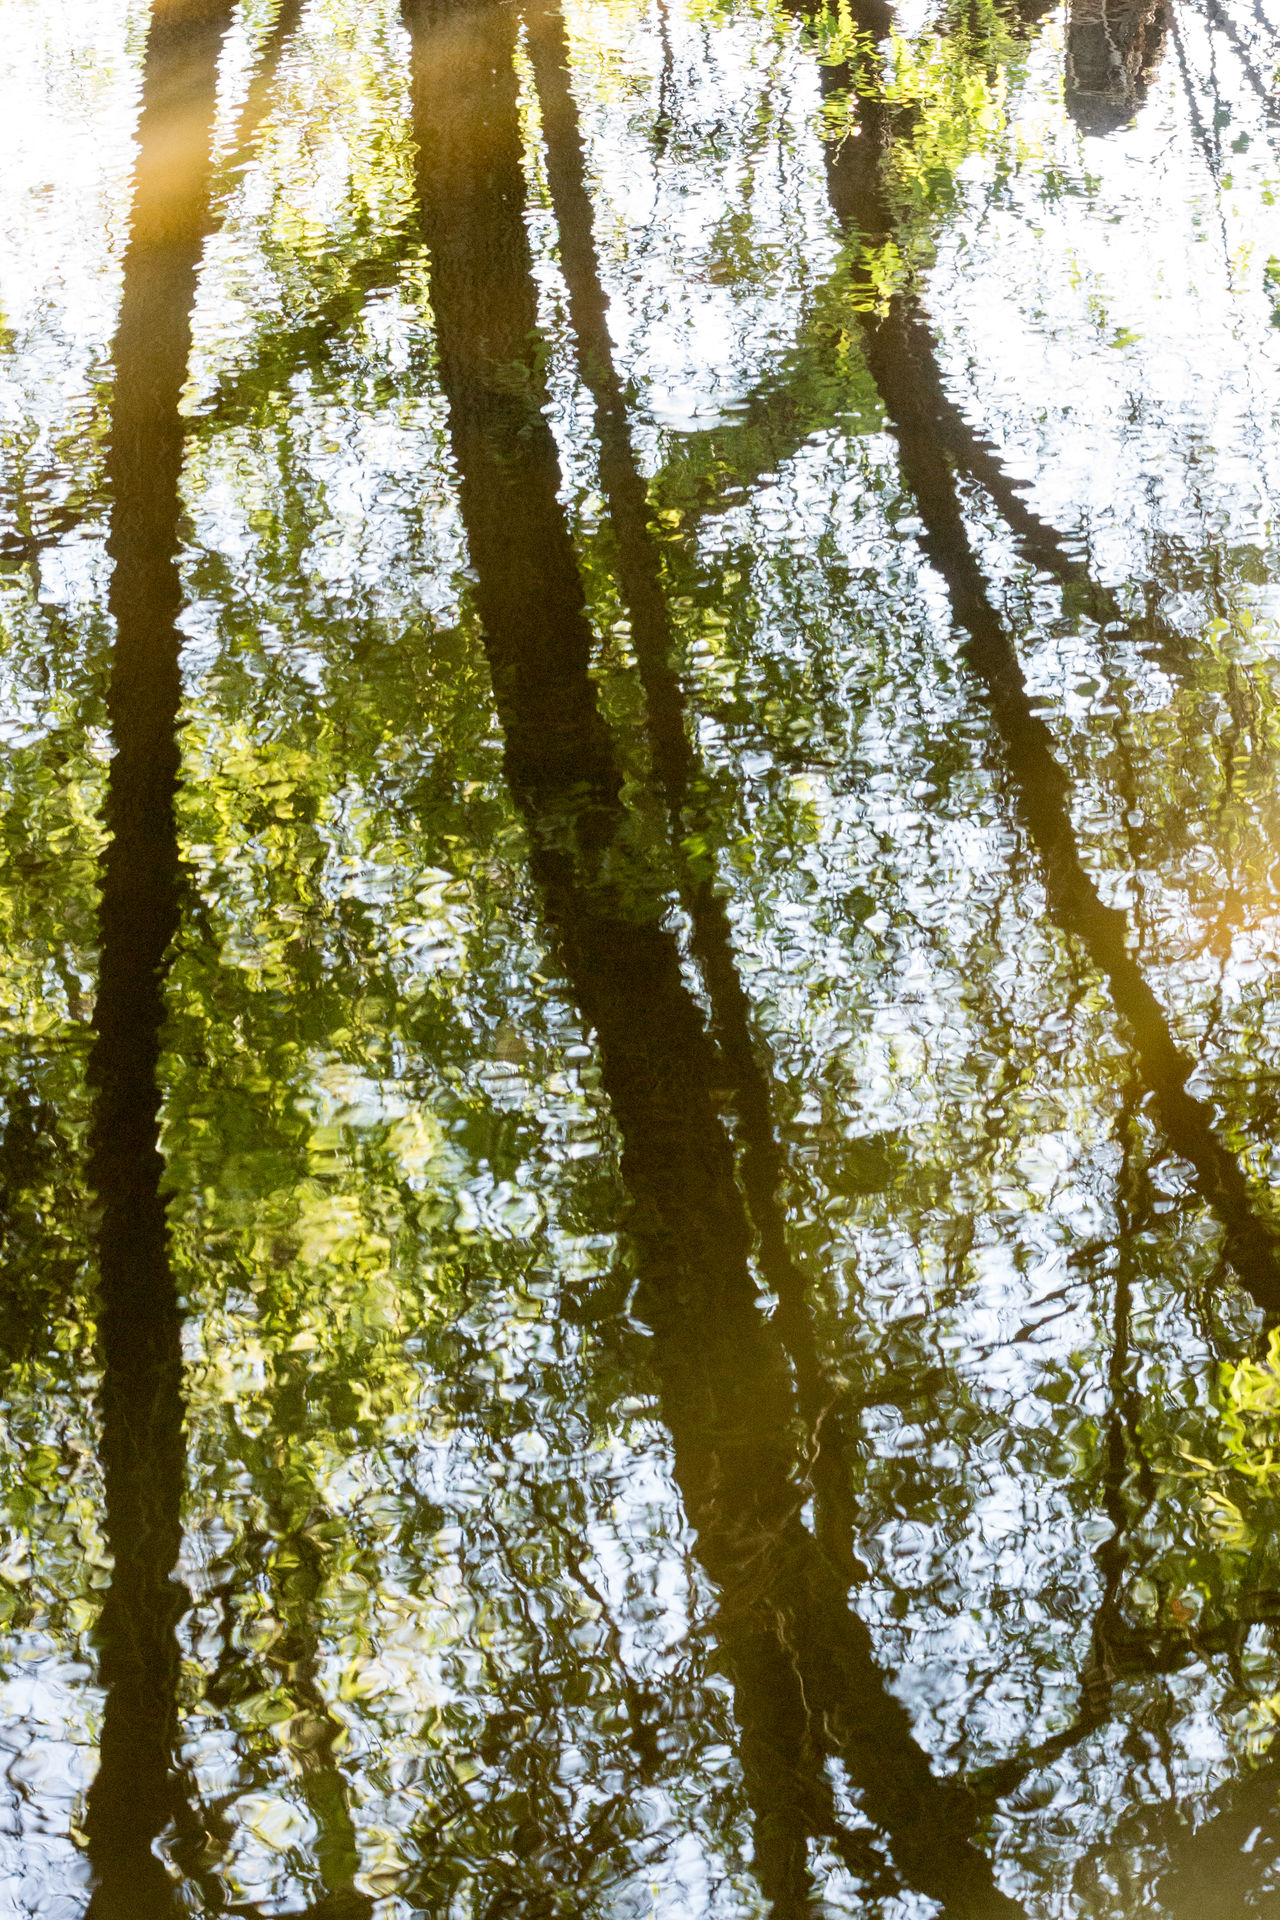 Tree Nature Green Color Beauty In Nature No People Day Outdoors Branch Water River Reflections Ripples In The Water Trees